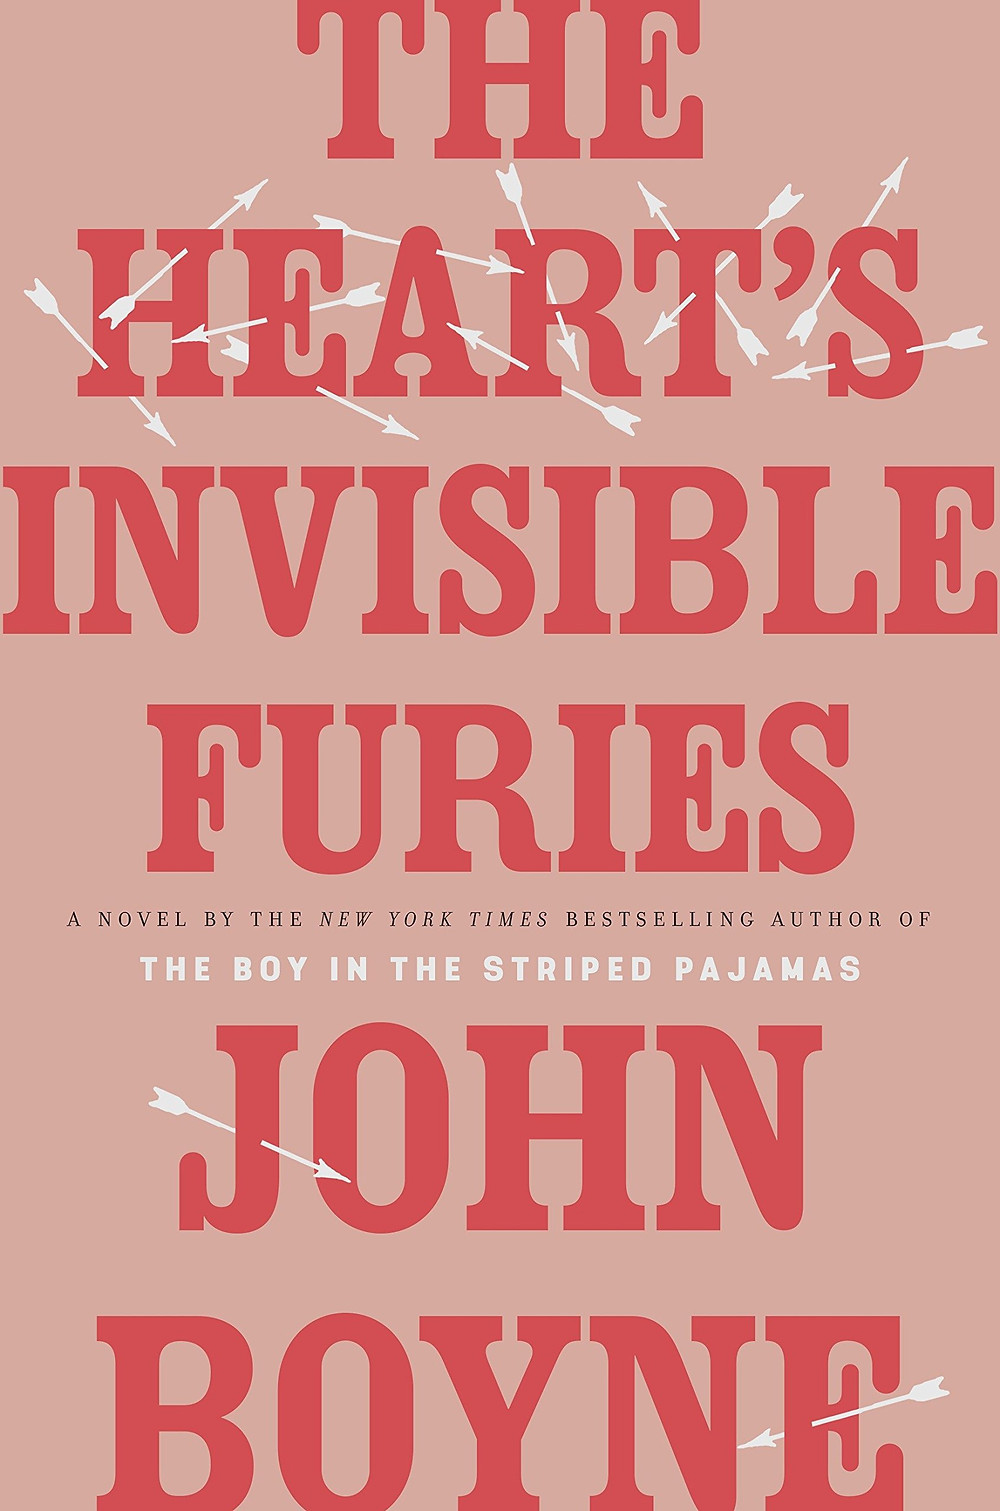 The Hearts Invisible Furies by John Boyne